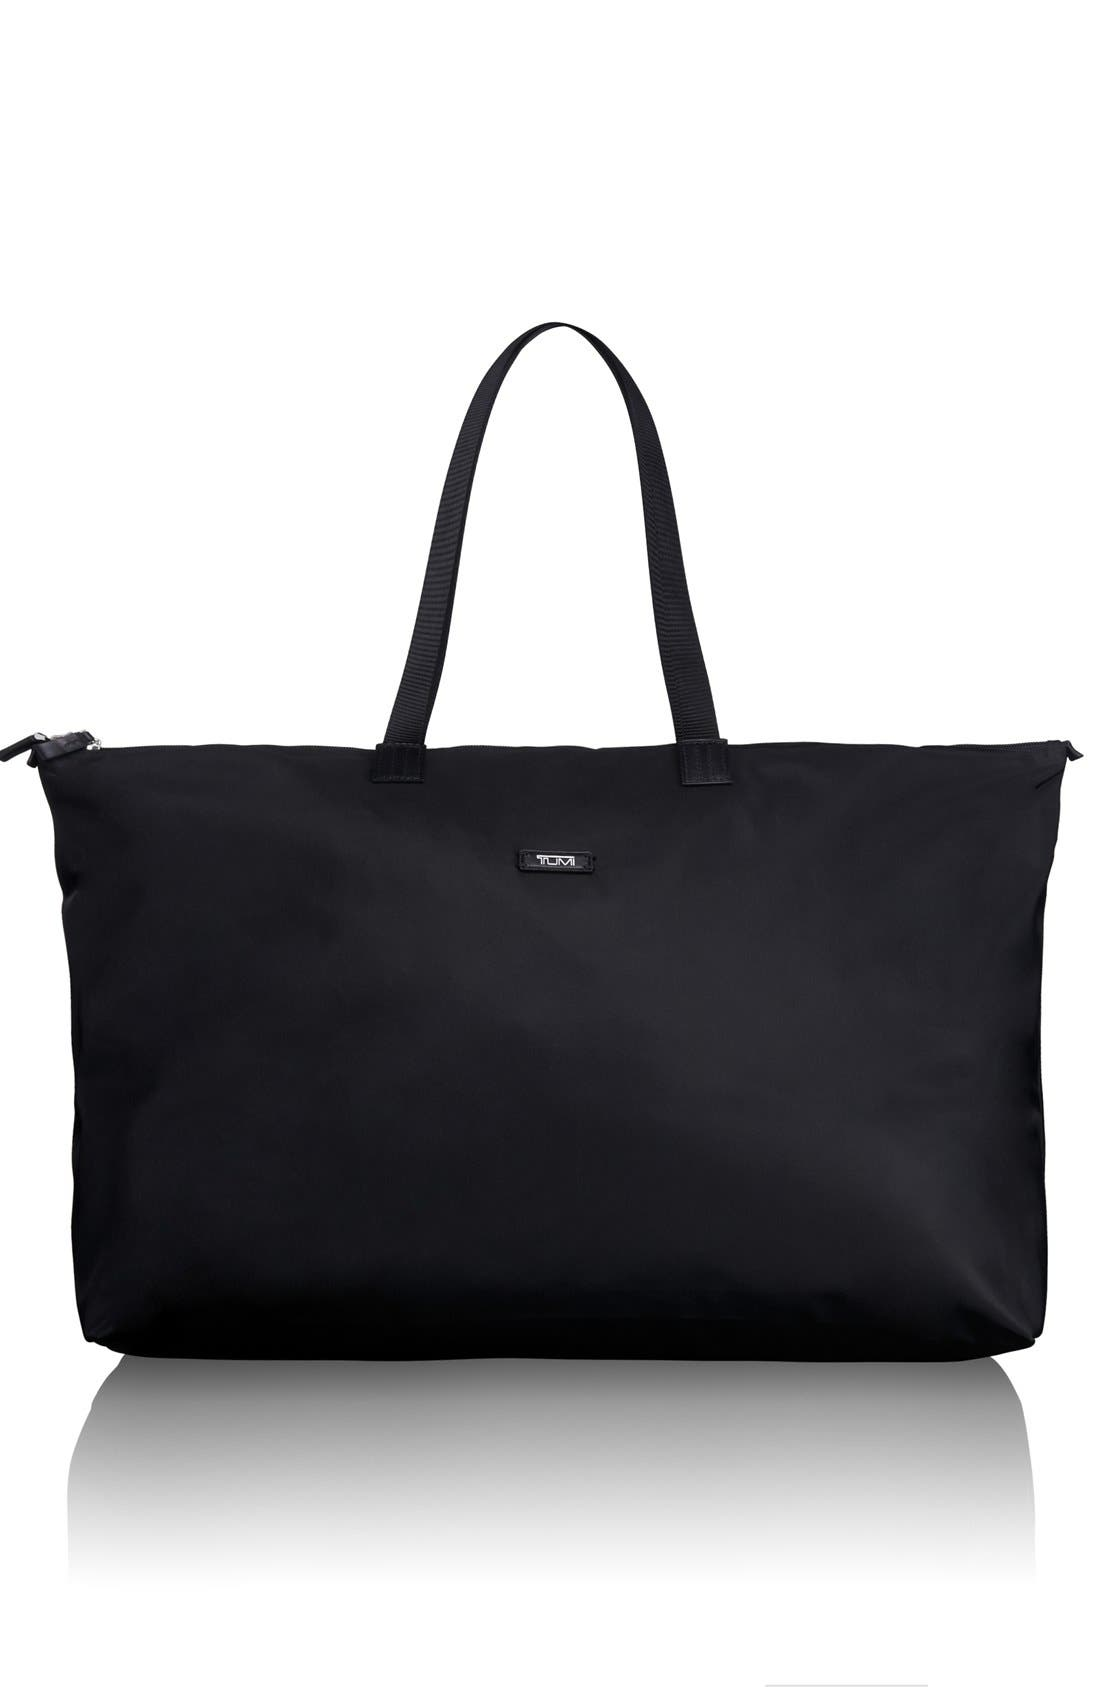 Alternate Image 1 Selected - Tumi 'Journey - Just in Case®' Nylon Duffel Bag (23 Inch)